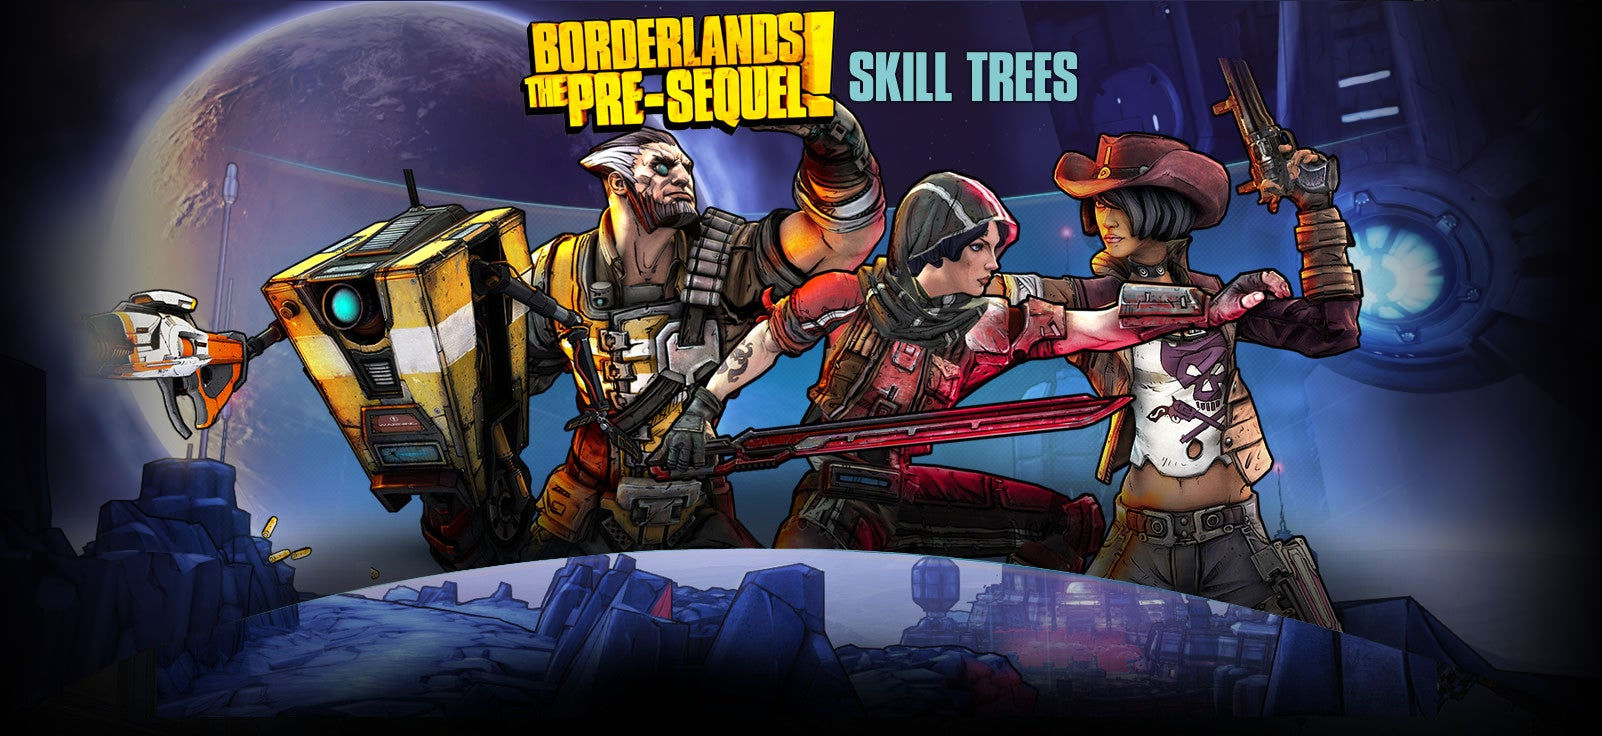 You Can Now Play With The Skill Trees Of Borderlands: The Pre-Sequel